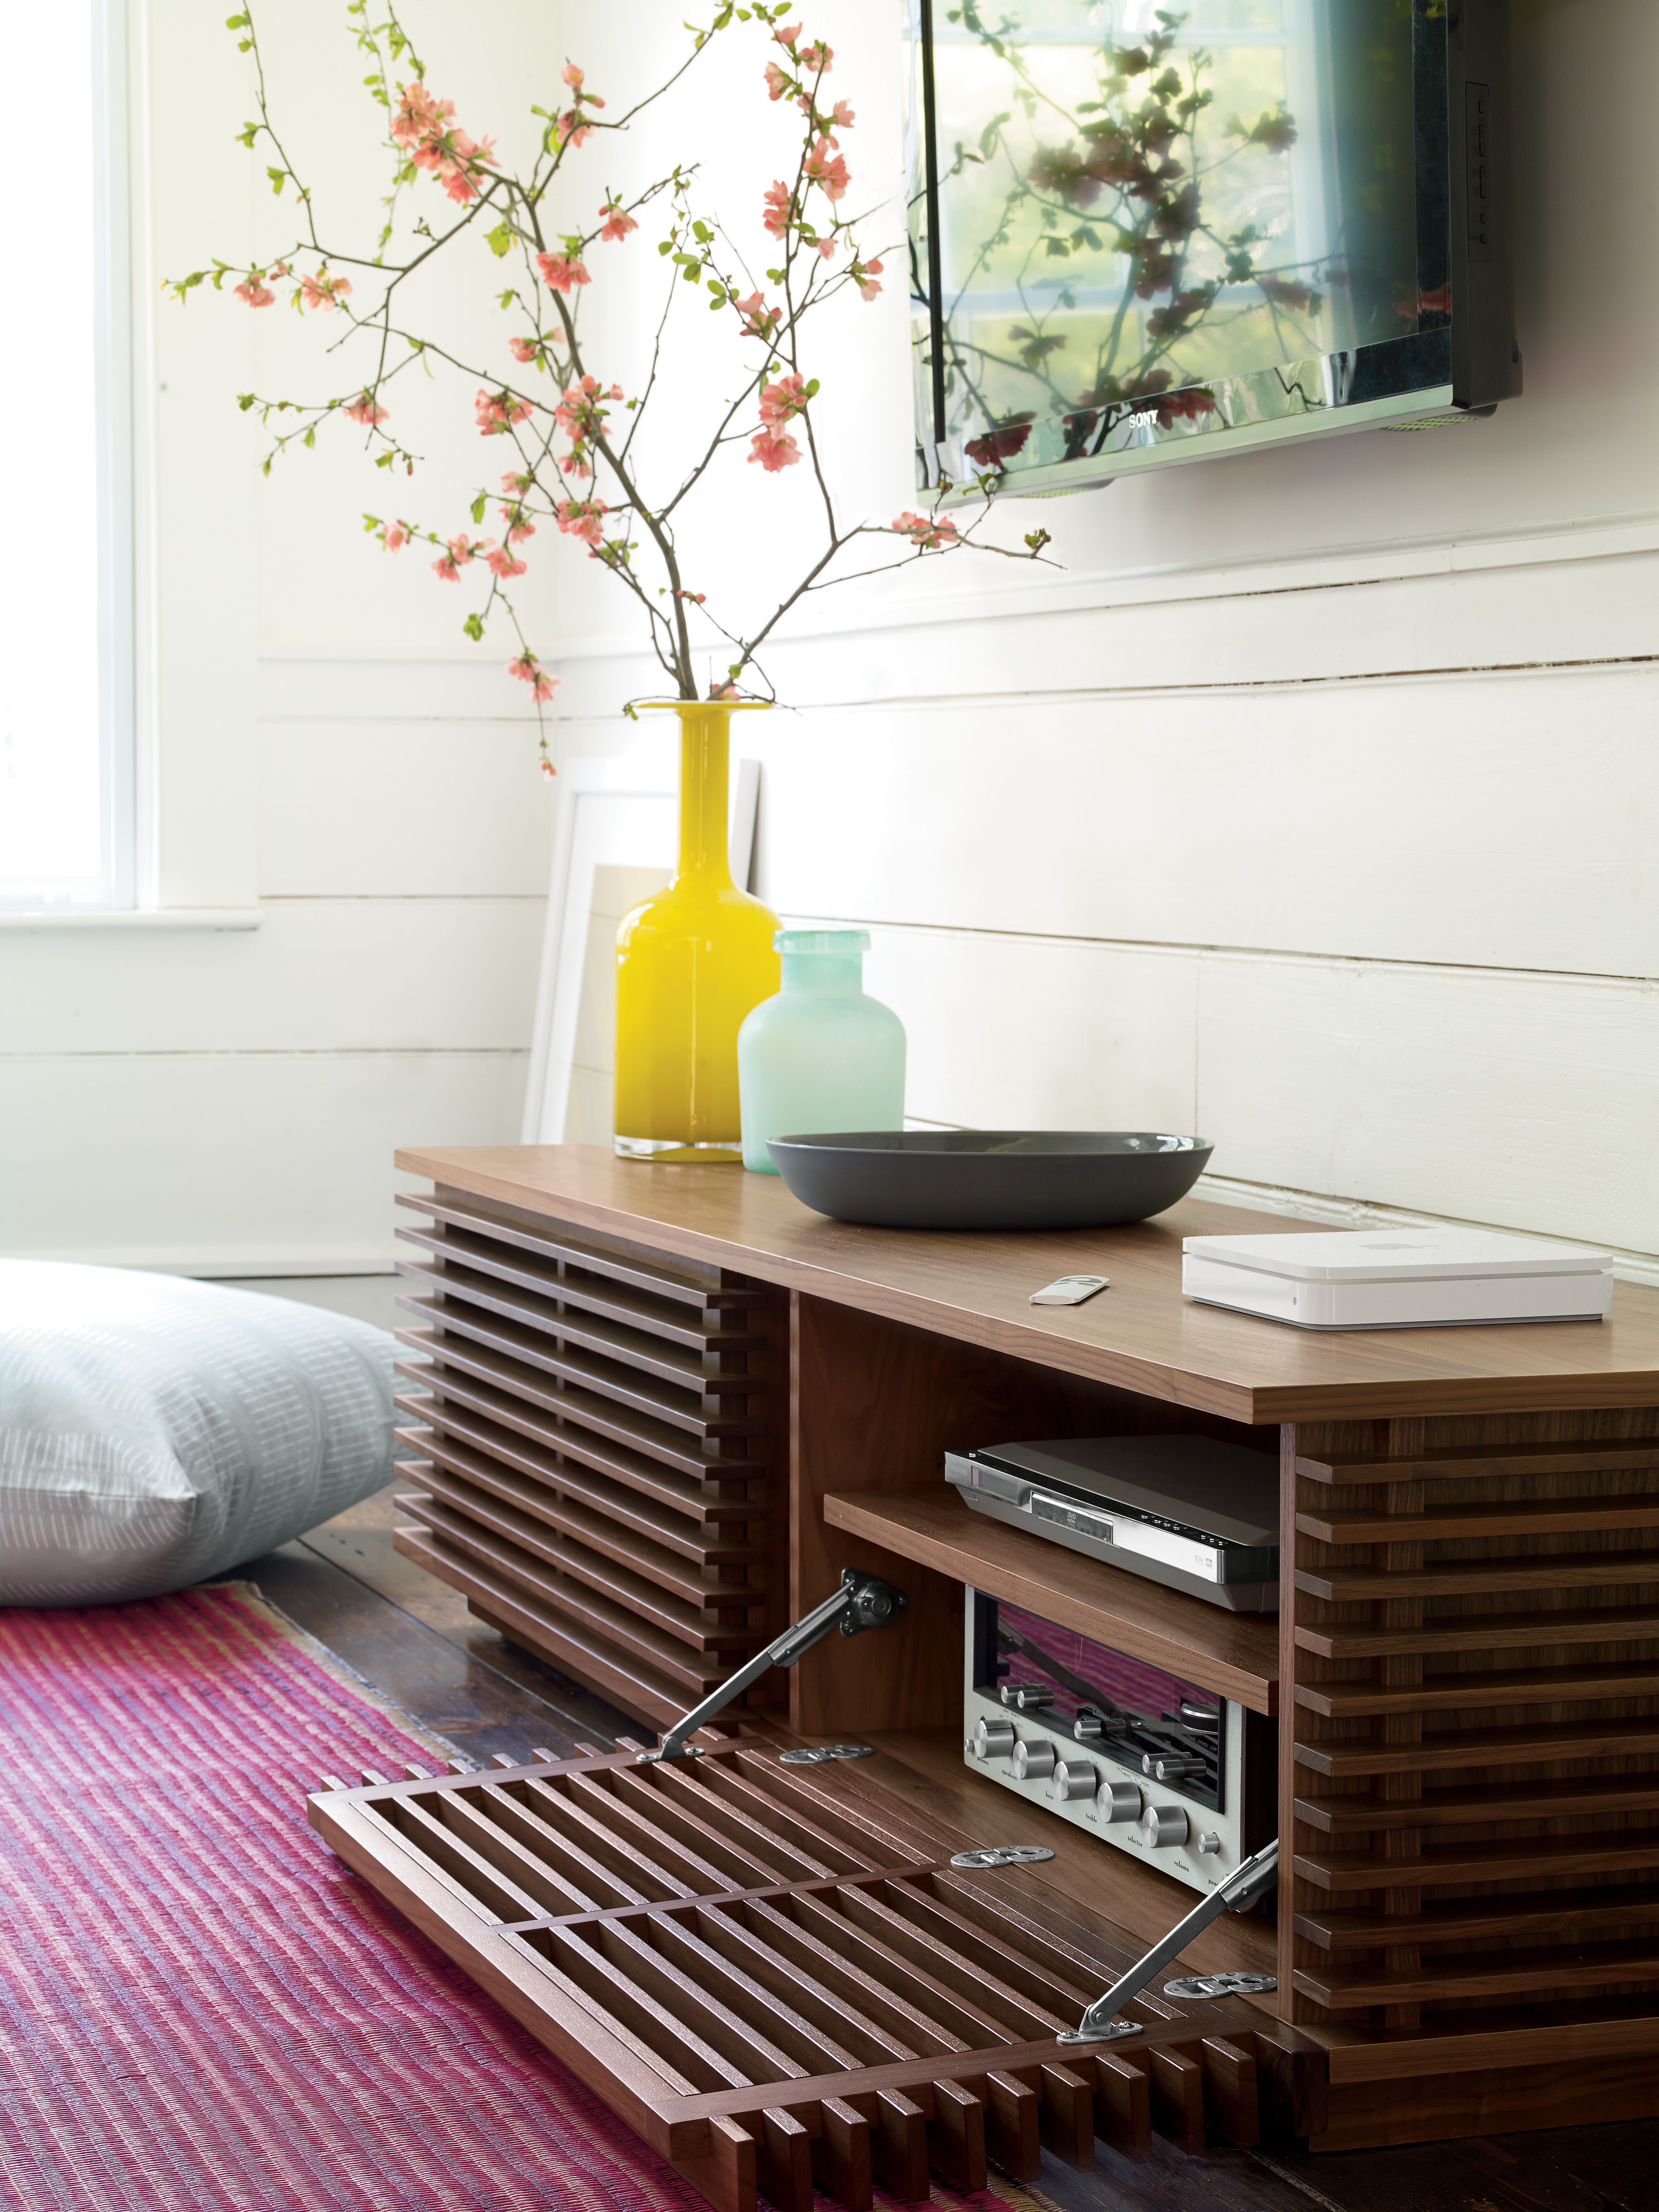 Stylish And Practical Contemporary Furniture For Every: Looking For Media Storage? We Have Solutions For Every